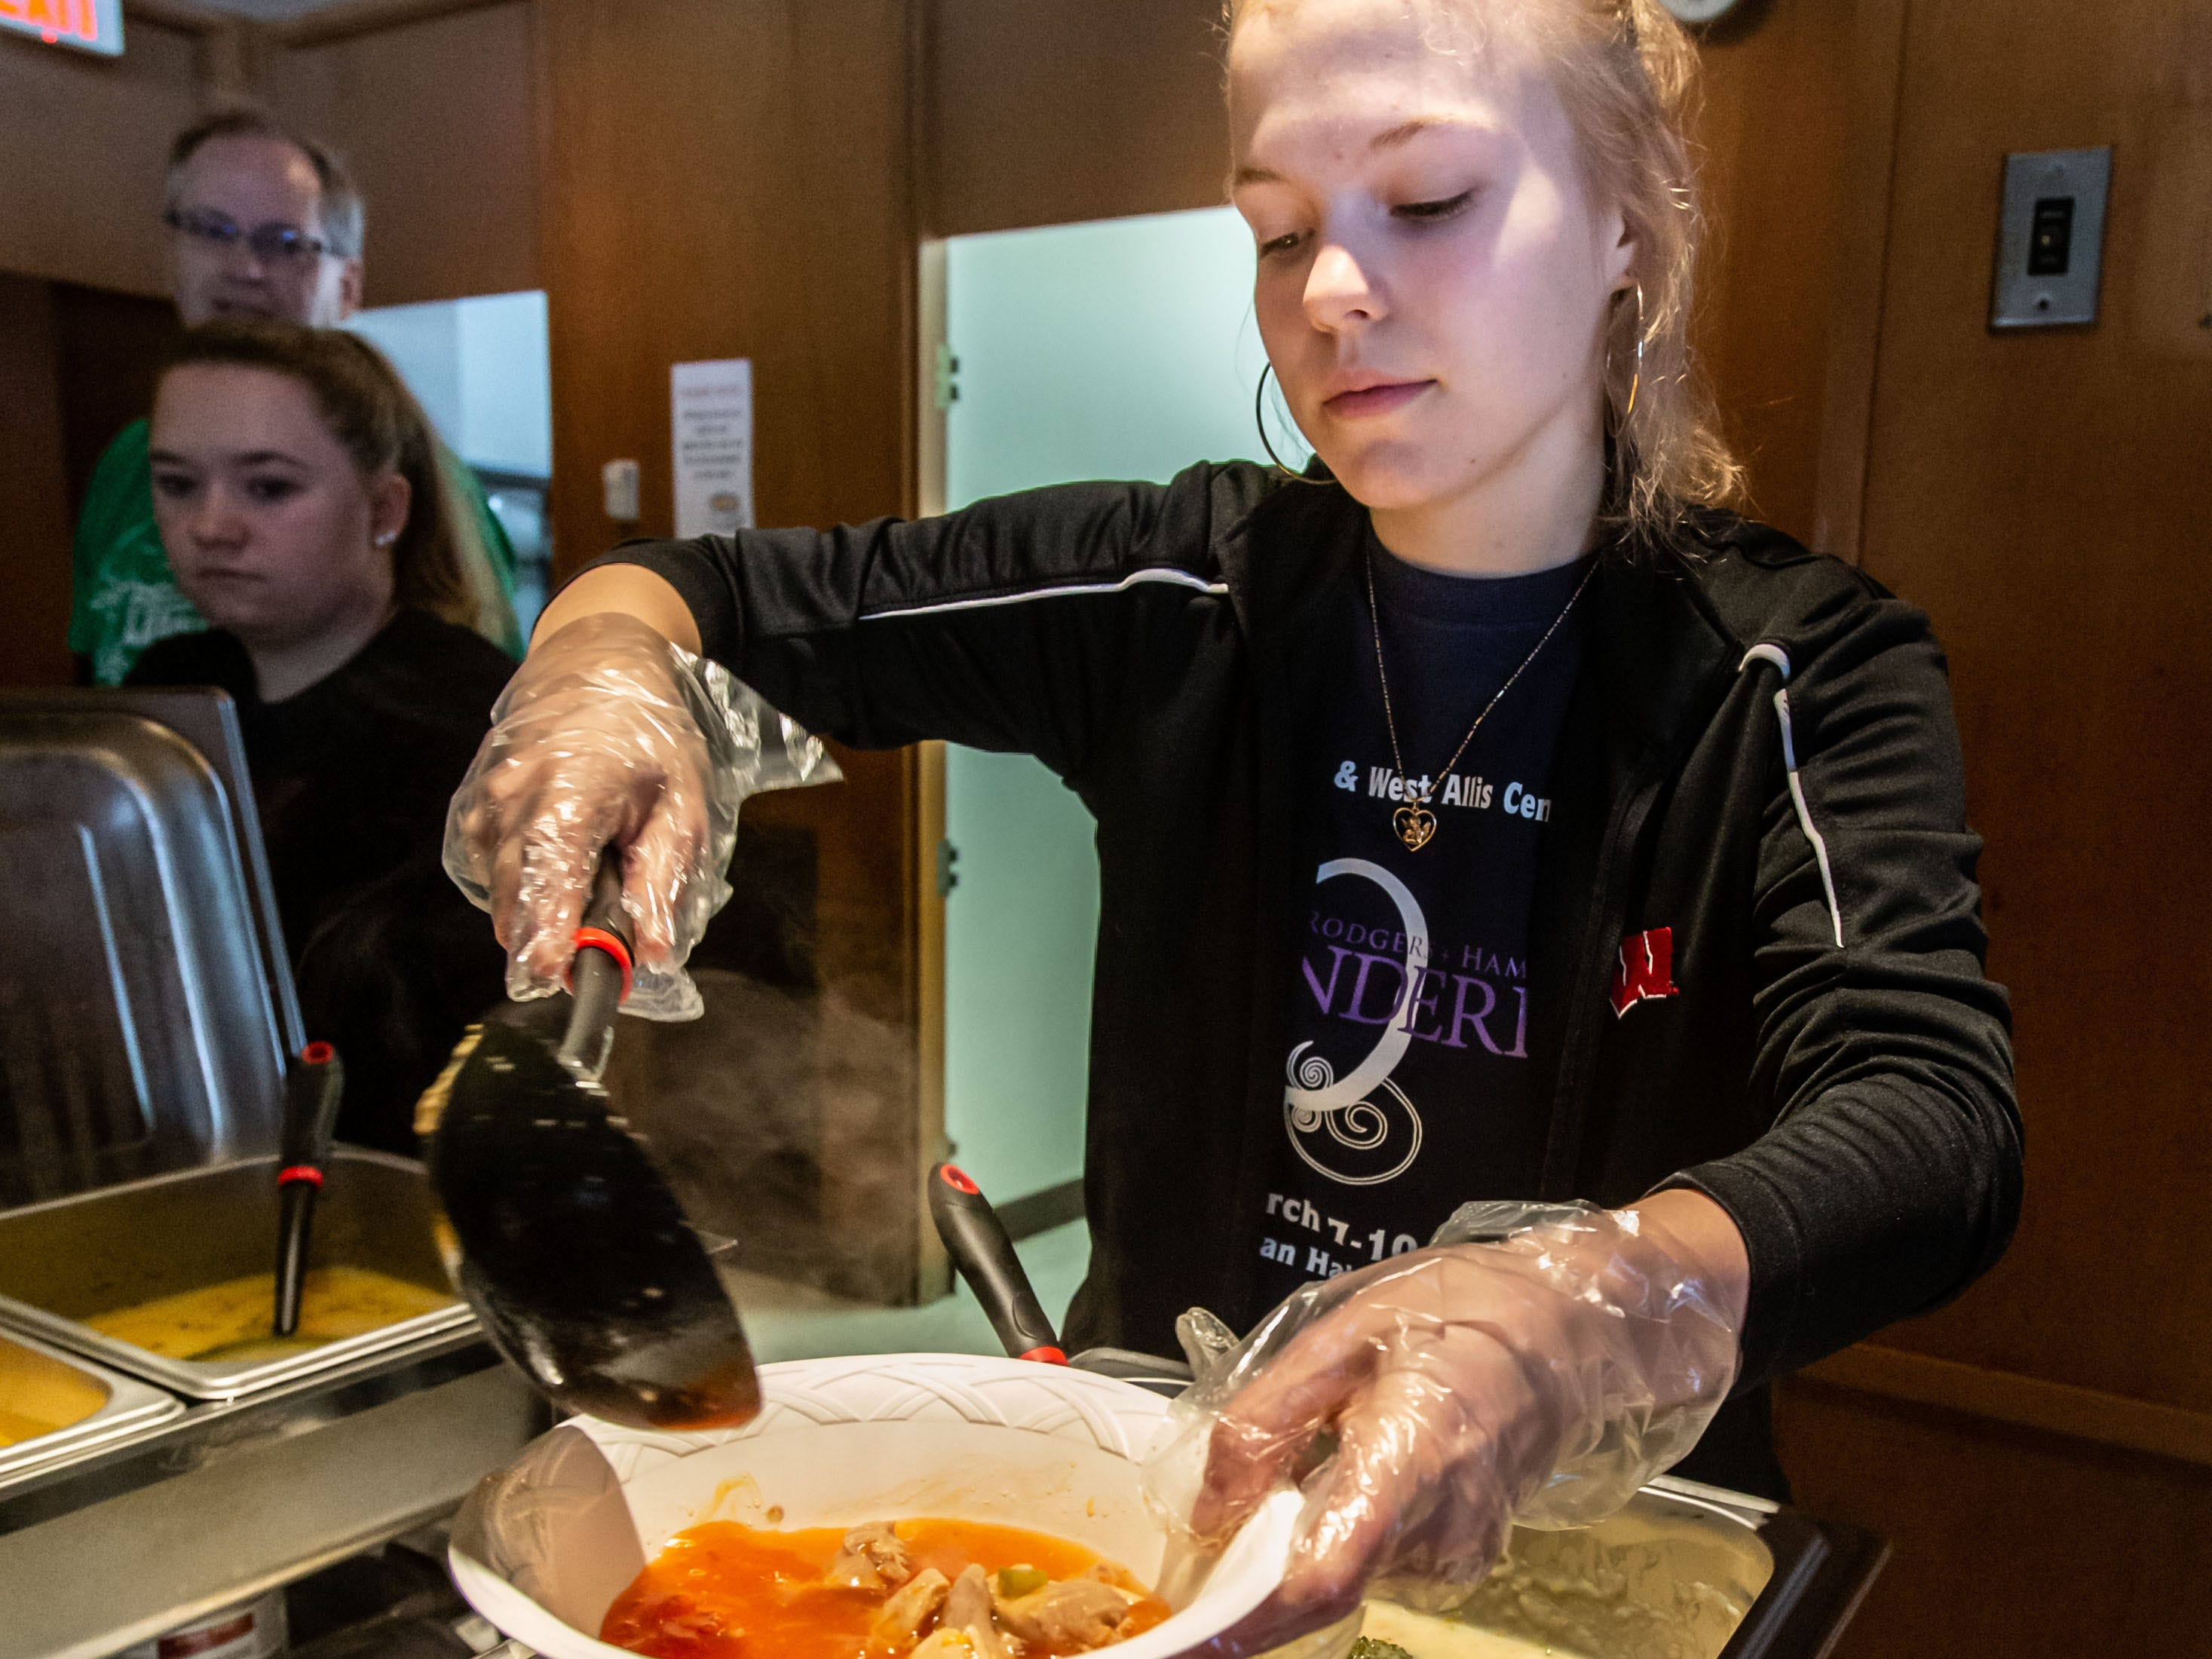 Volunteer Abigail Houck of West Allis fills a bowl of soup during the 8th annual Empty Bowls event at the LaFollette Park Pavilion in West Allis on Saturday, March 2, 2019. The goal of the event, hosted by the Friends of LaFollette Park, is to collect food and raise funds for West Allis food pantries. Local restaurants, including Senor Sol, Urban Joe Cafe, Filippo's Italian Restaurant, Pallas Restaurant, and West Allis Cheese and Sausage Shop donate the delicious soups offered at the event.